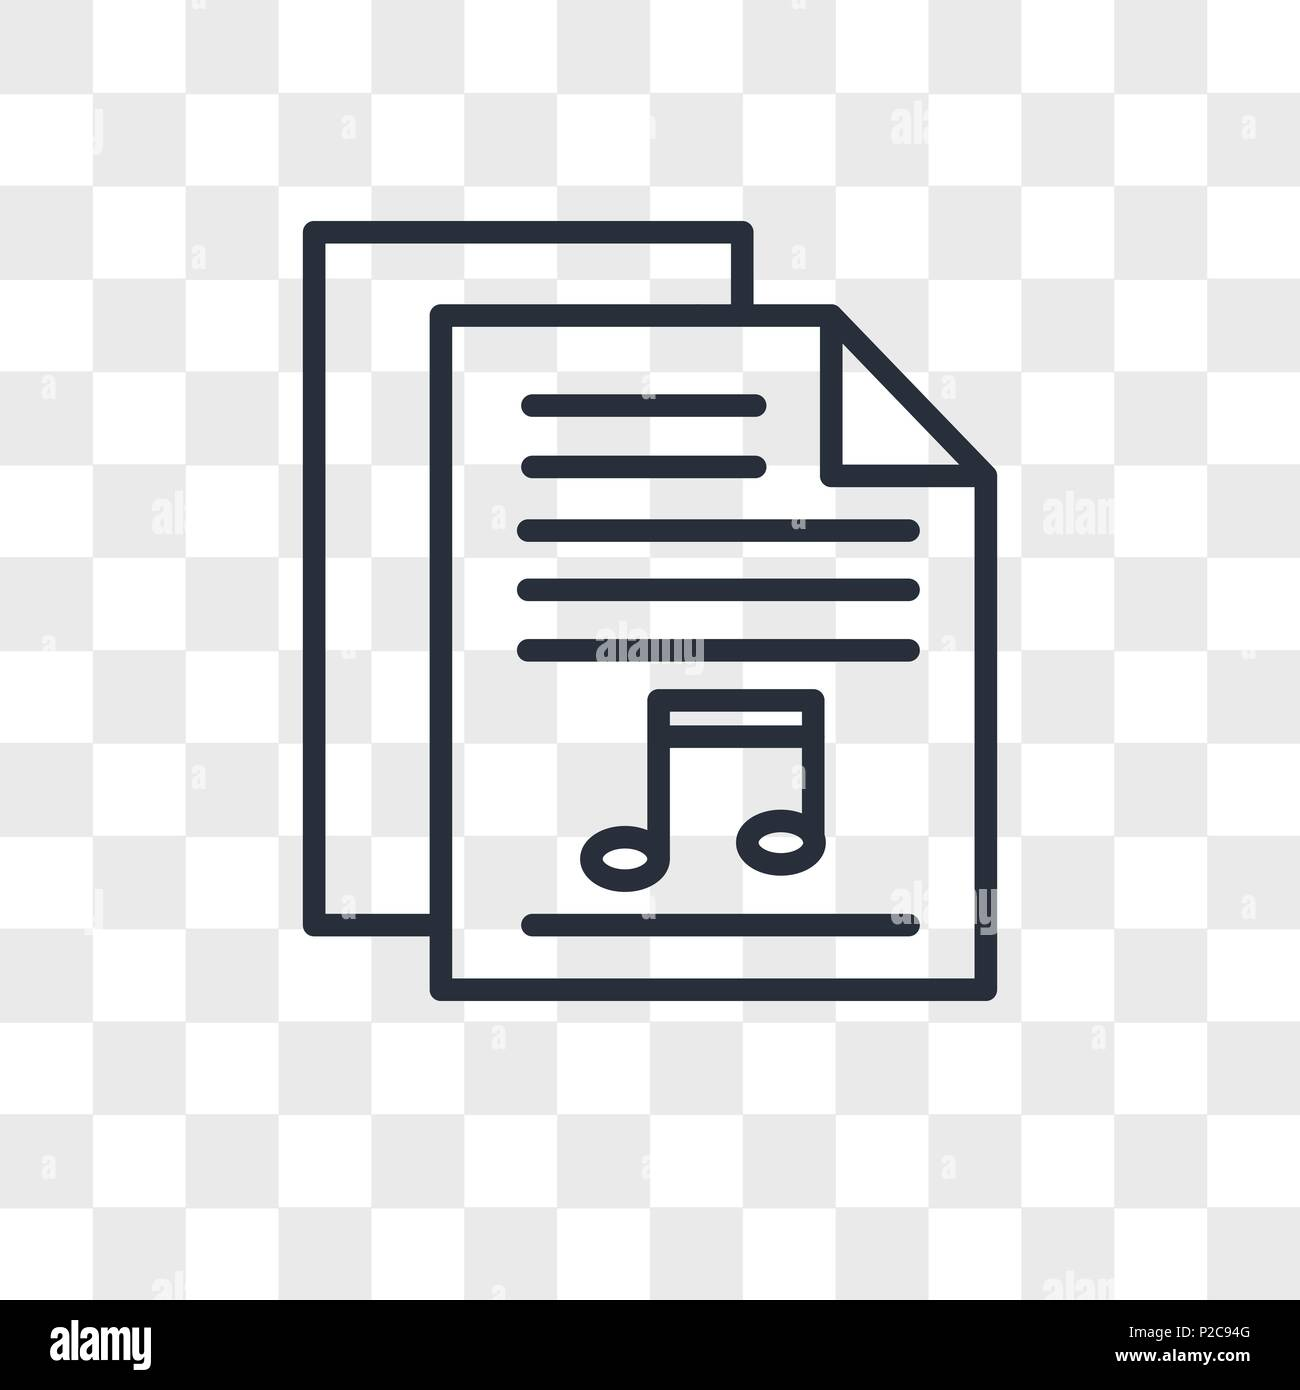 Sheet music vector icon isolated on transparent background